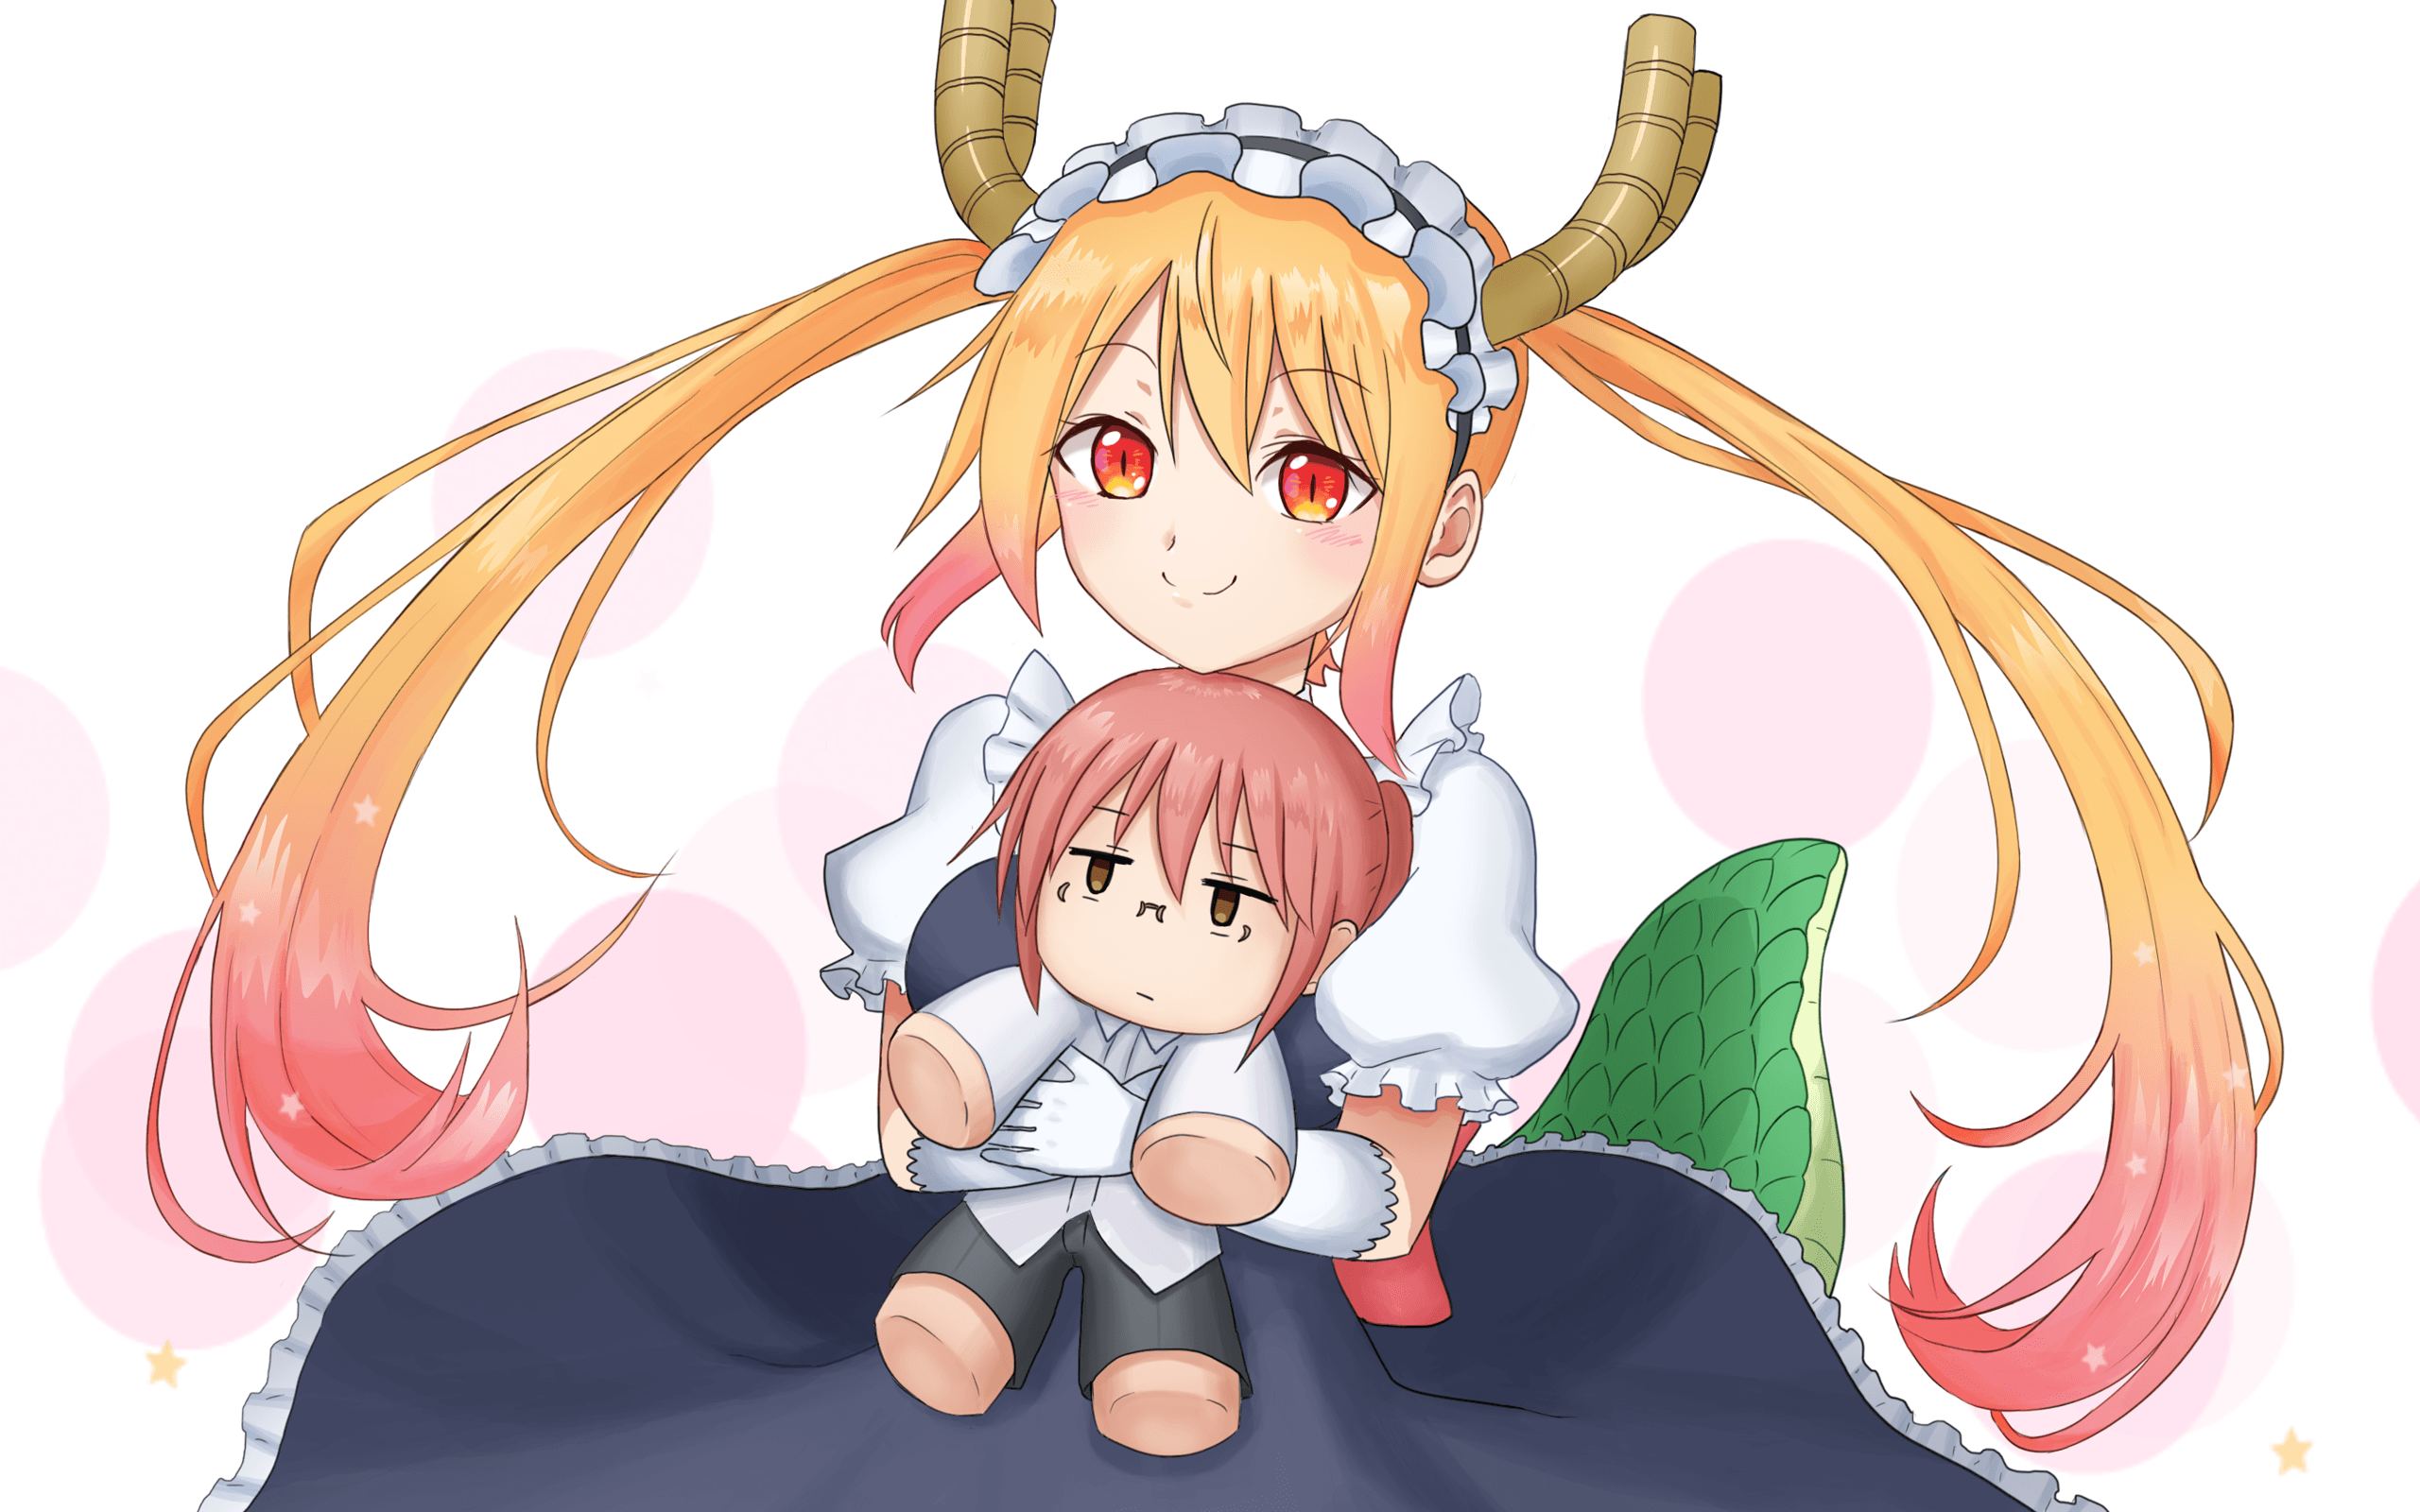 Kobayashi Maid Dragon